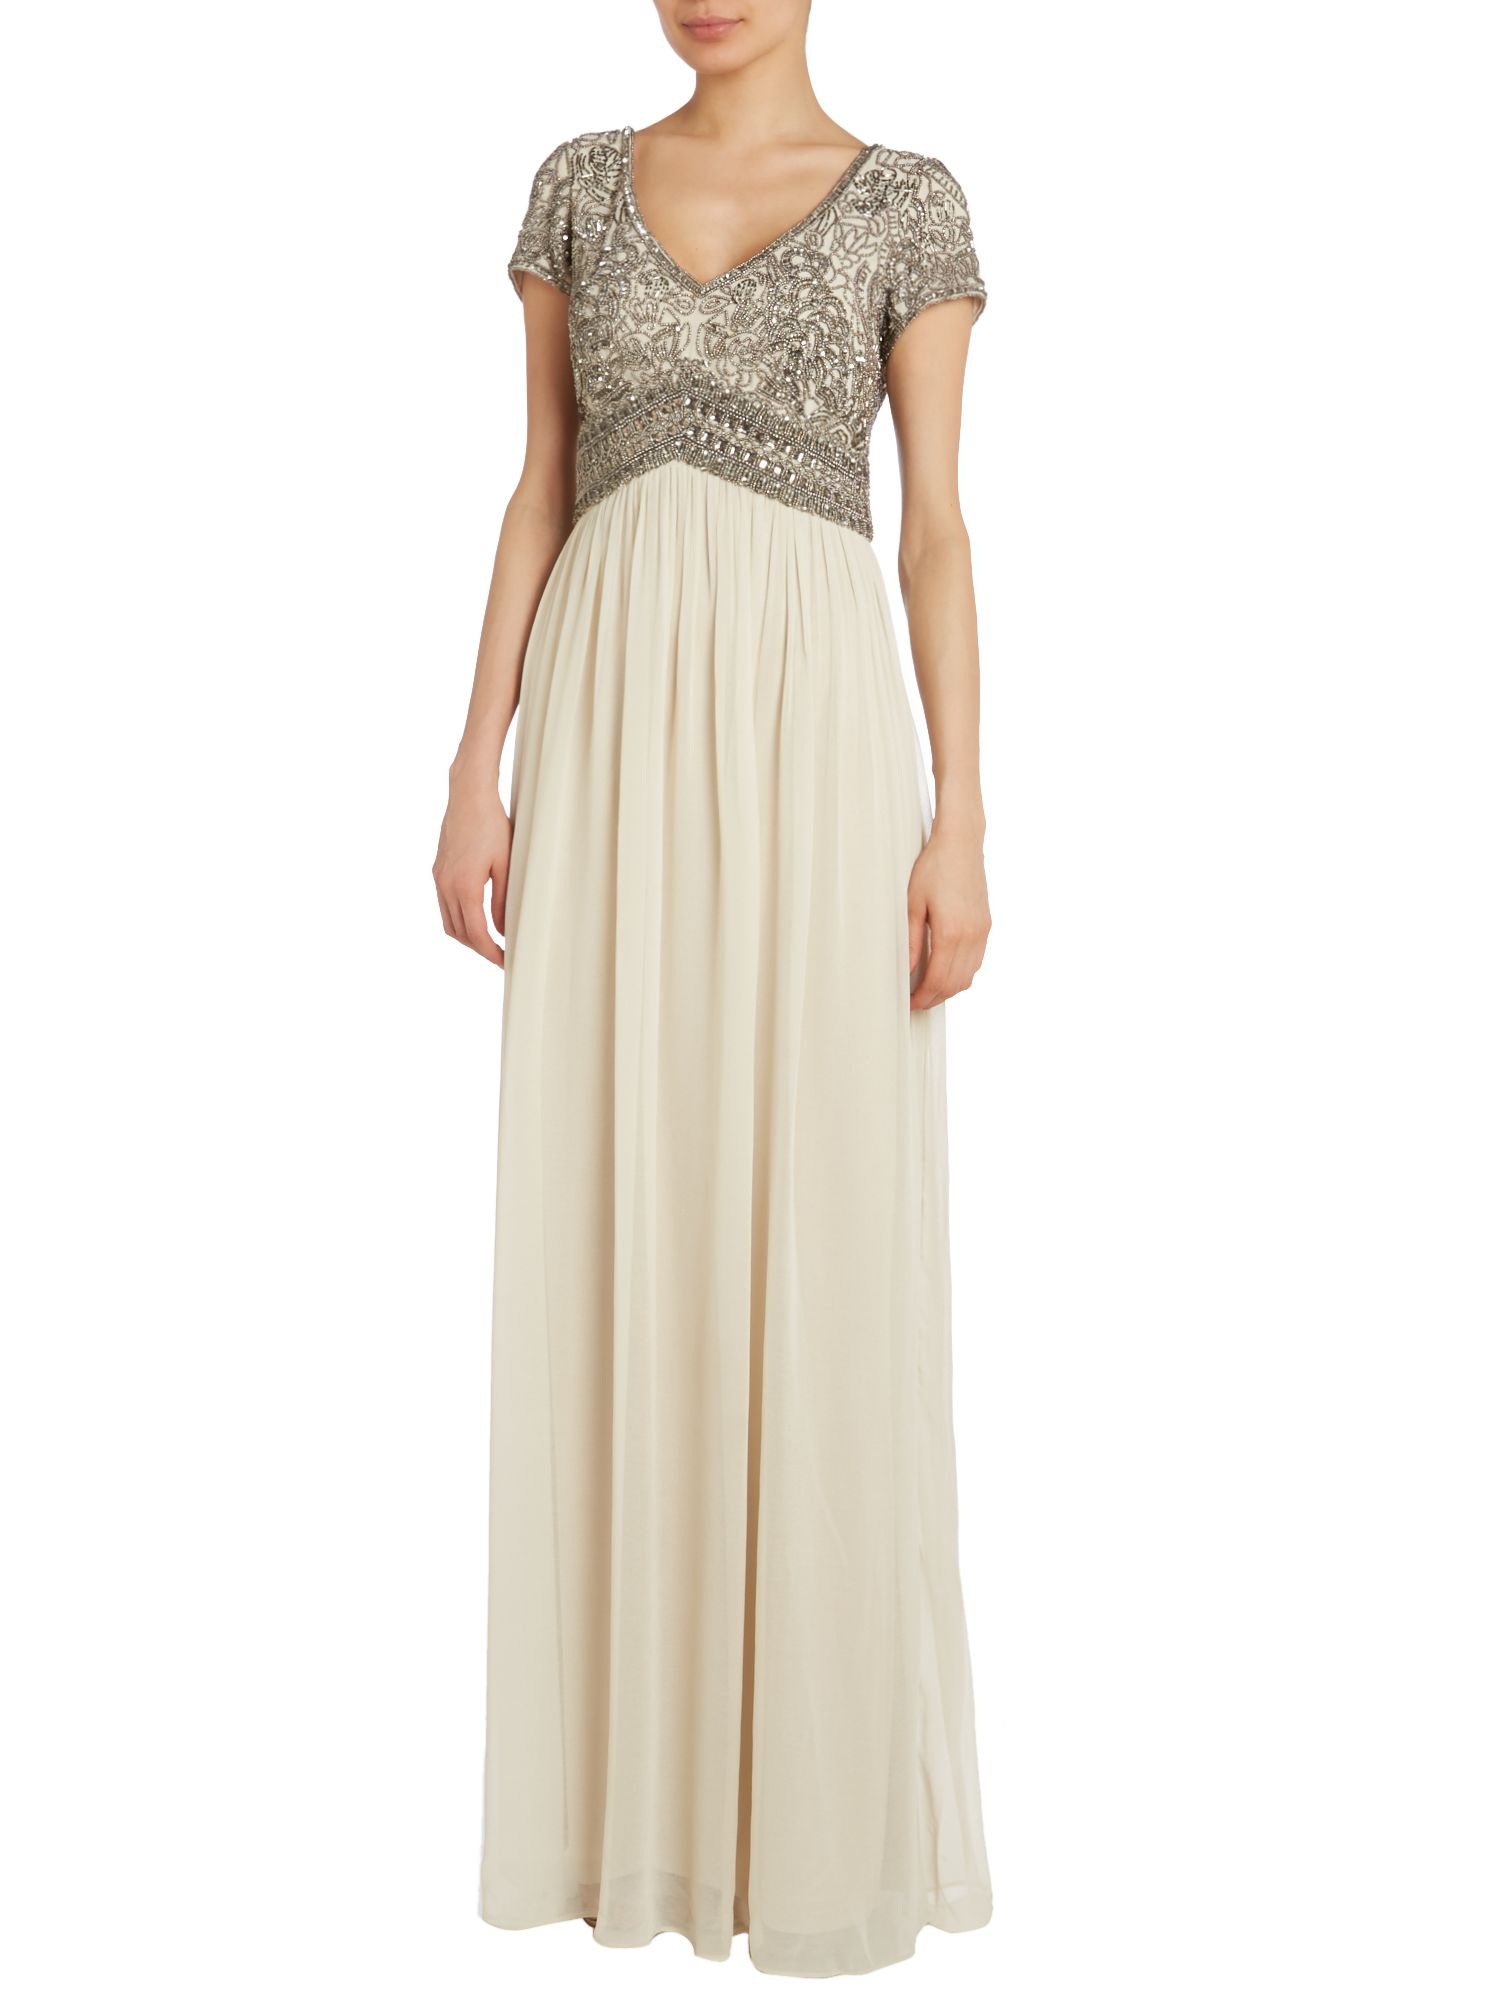 Beaded Top Empire Waist Dress